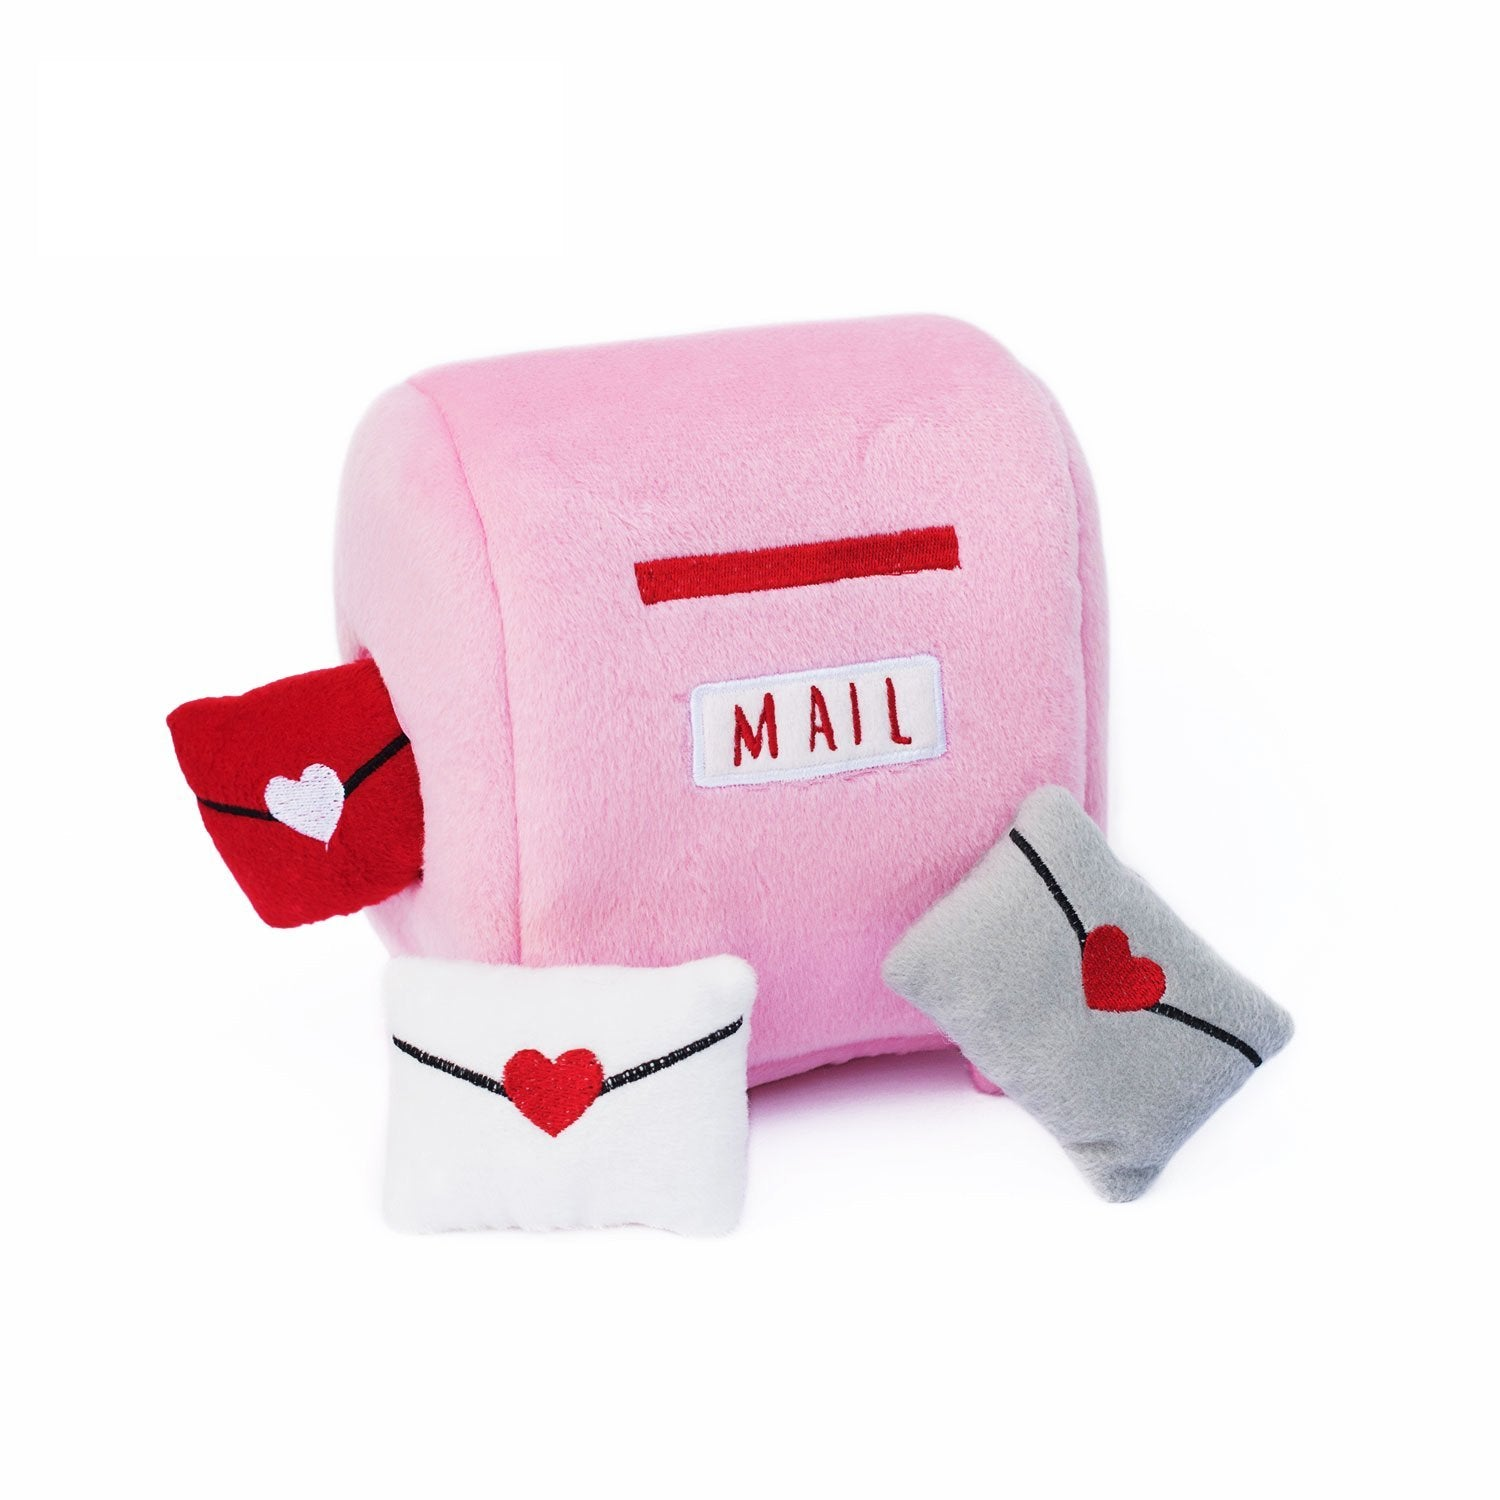 Zippy Paws Zippy Burrow - Mailbox and Love Letters